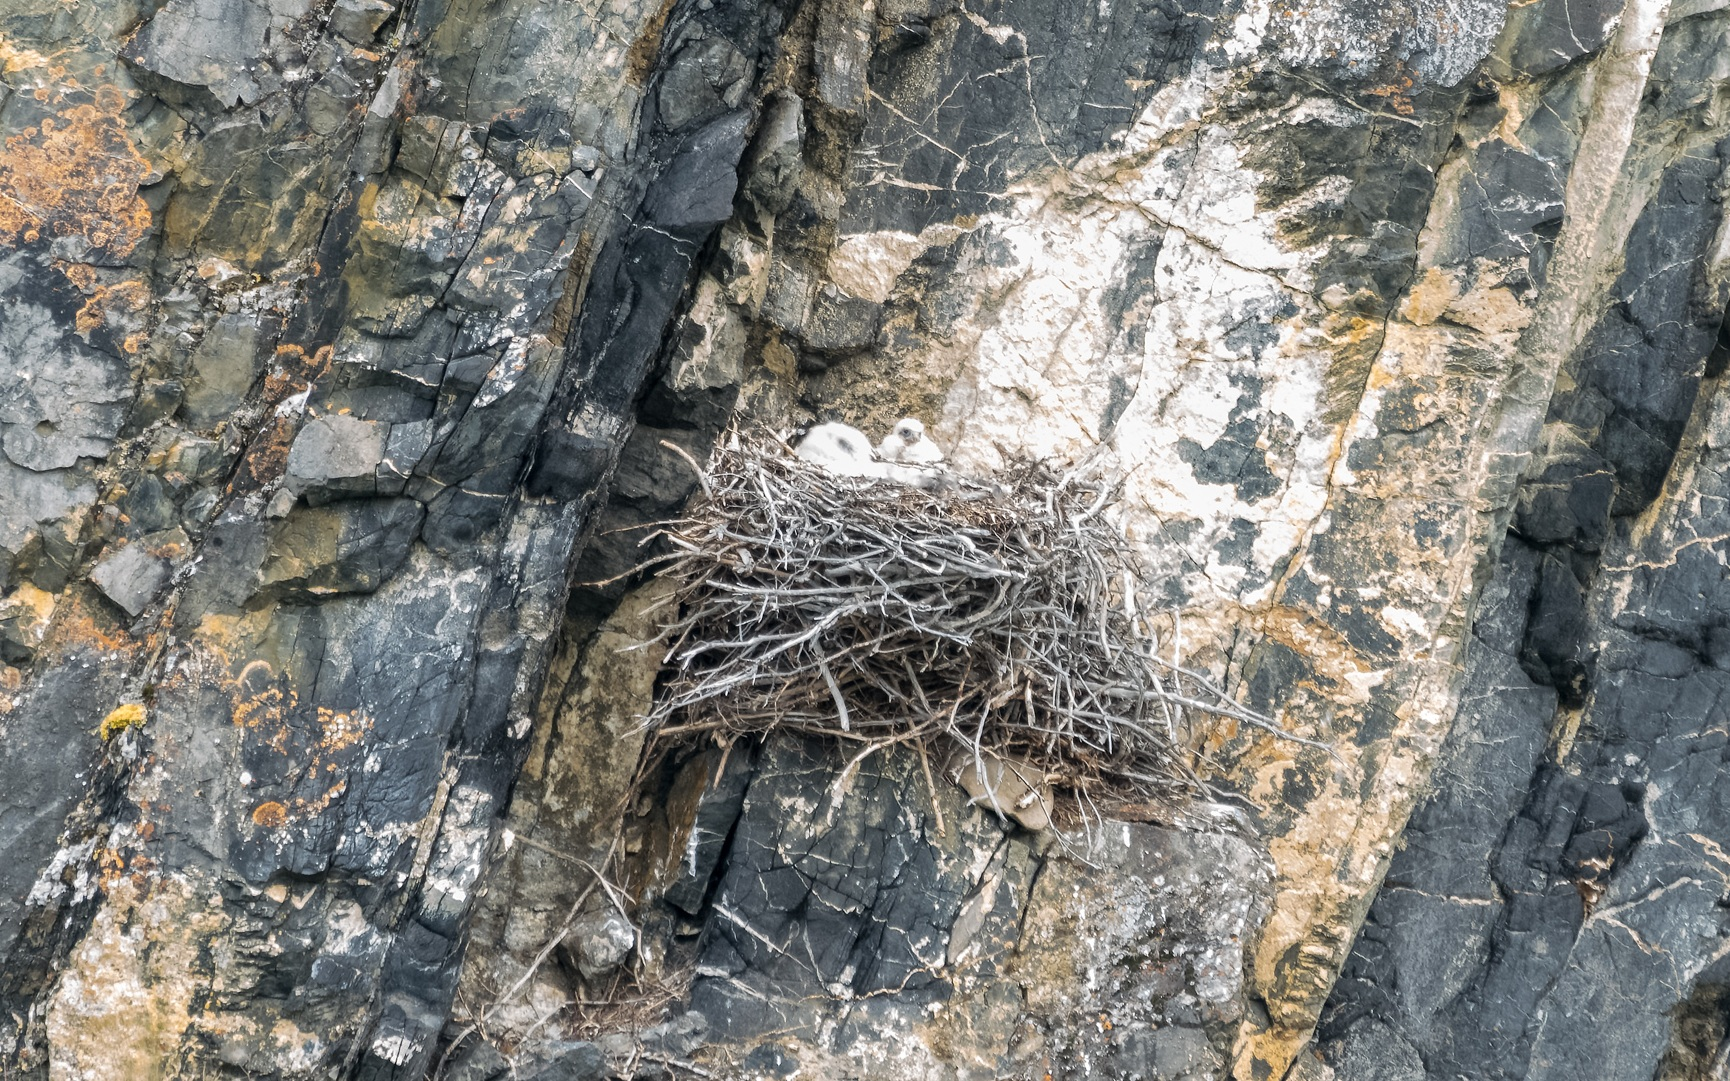 Peregrine Chicks in a Nest  (Photo by Michael Papple)